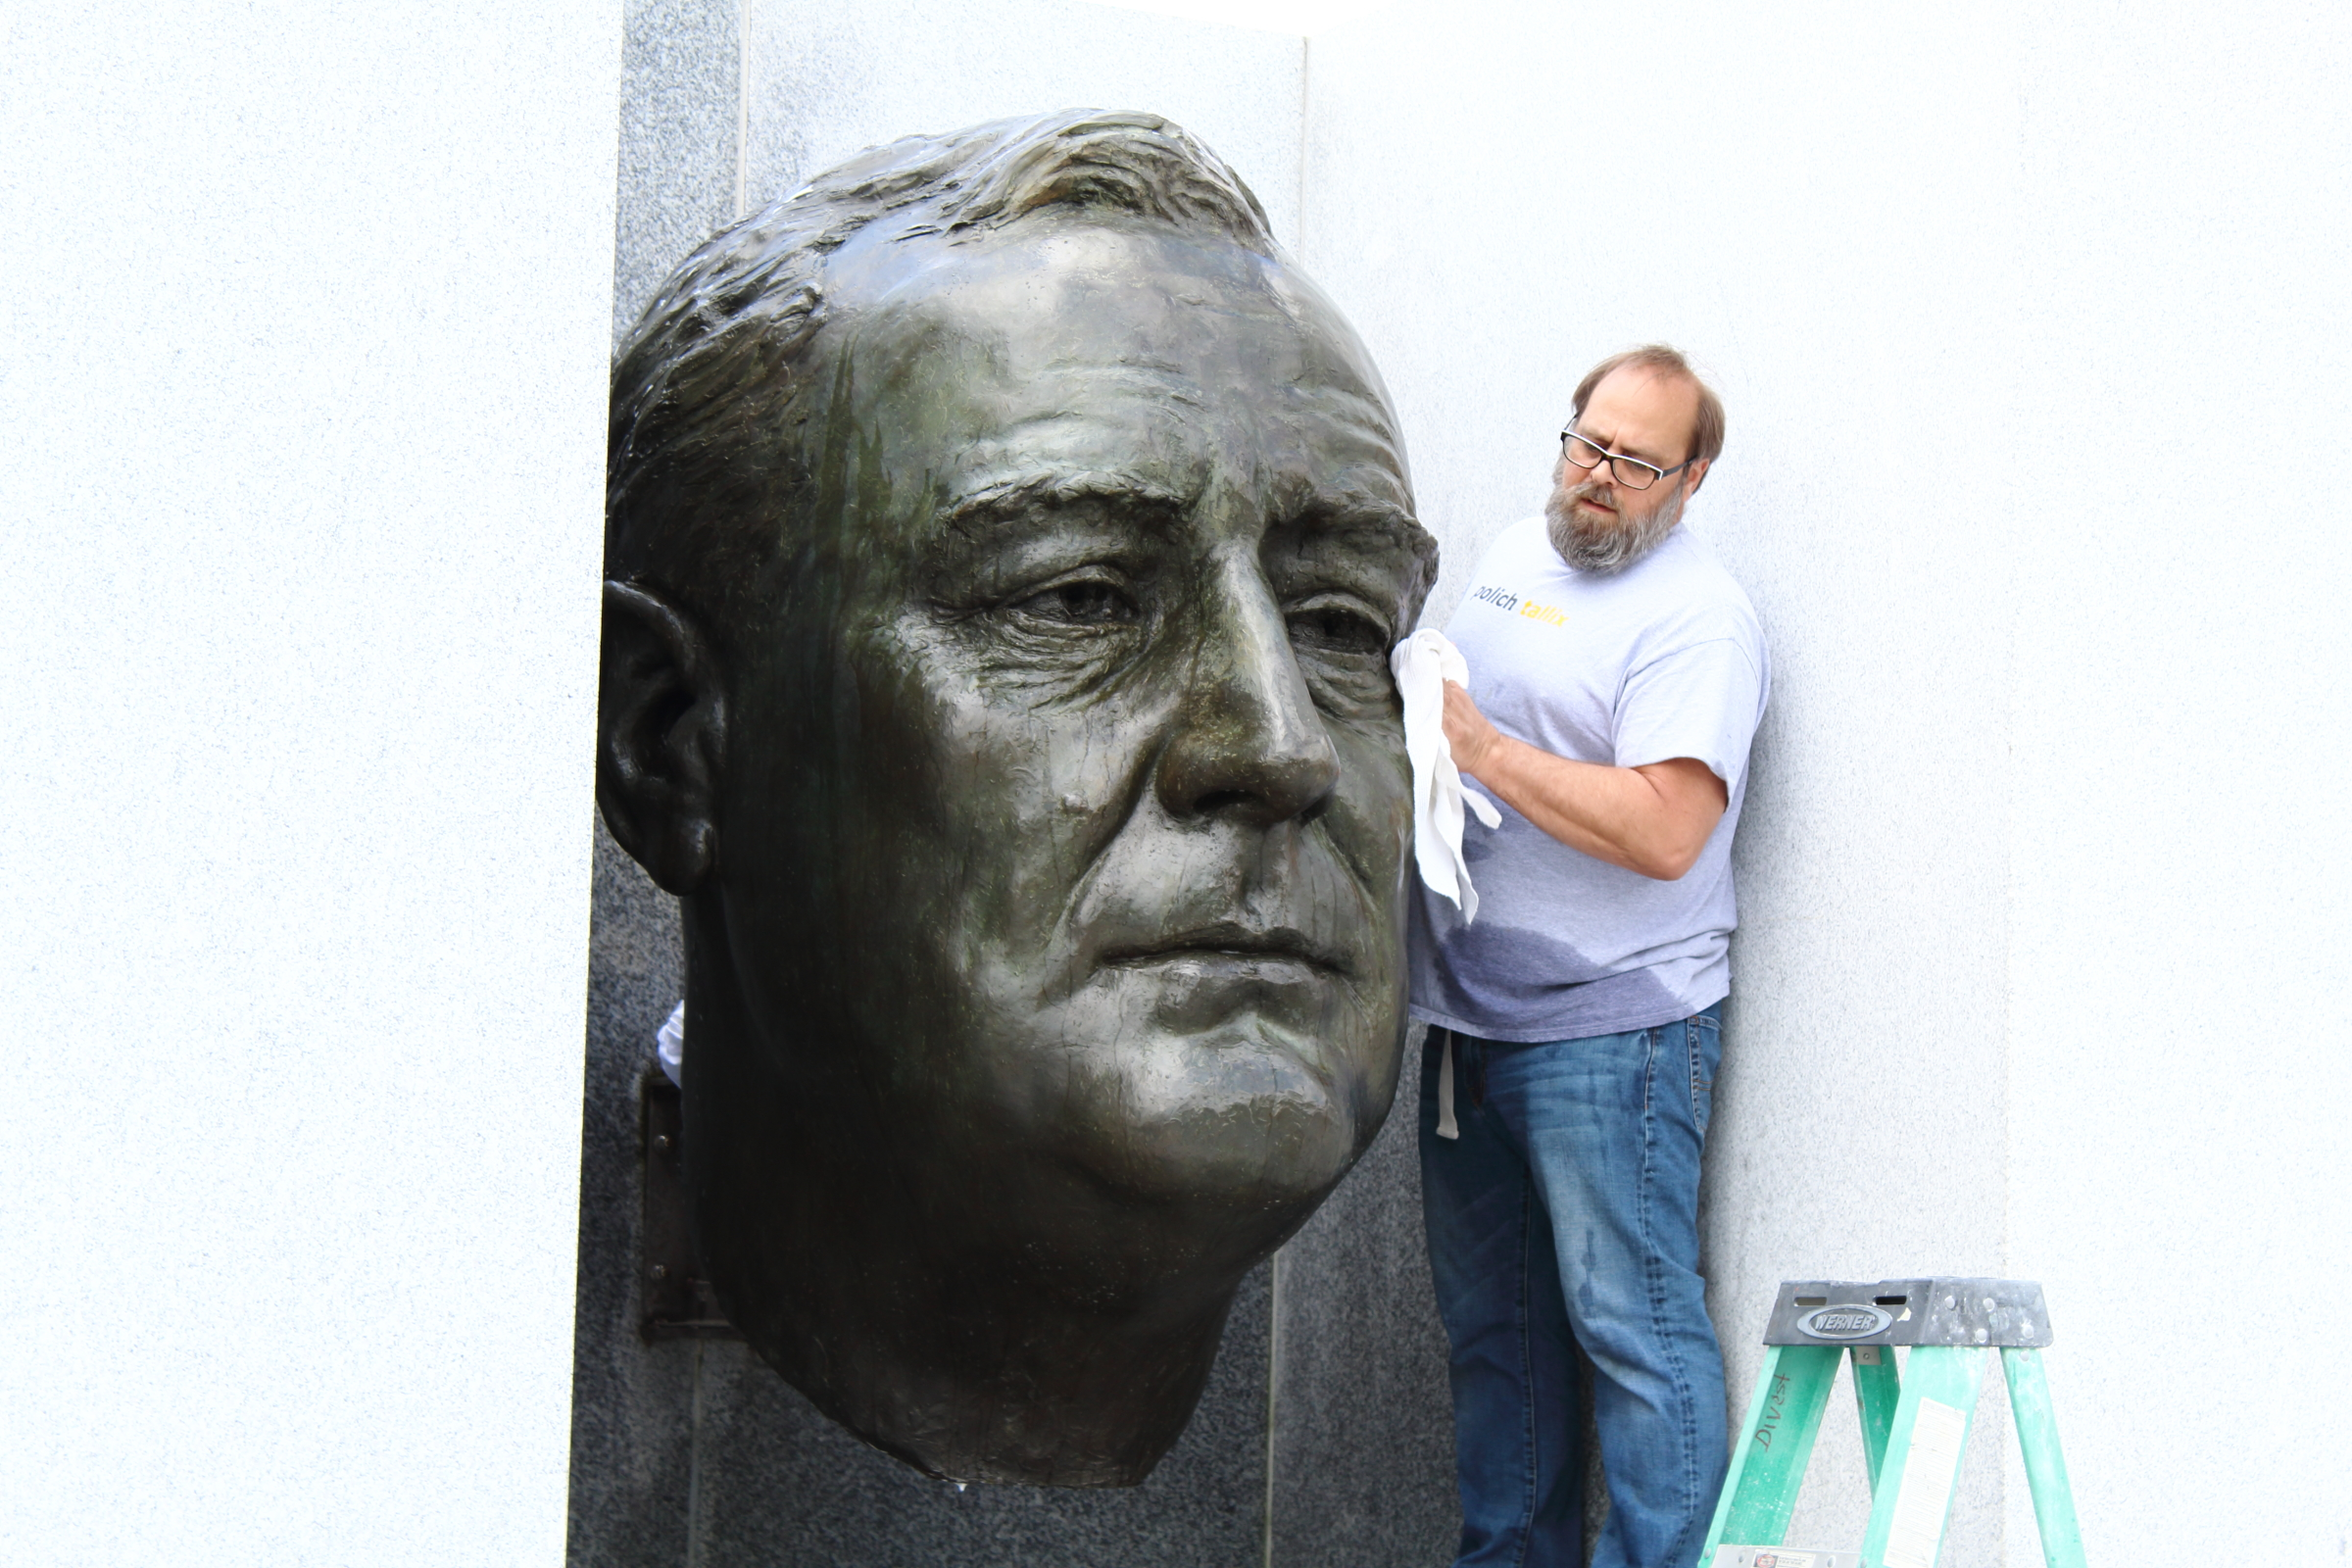 Pollich Tallix performances annual wax treatments on the bust. Photo by Michael Heck, Four Freedoms Park Conservancy.